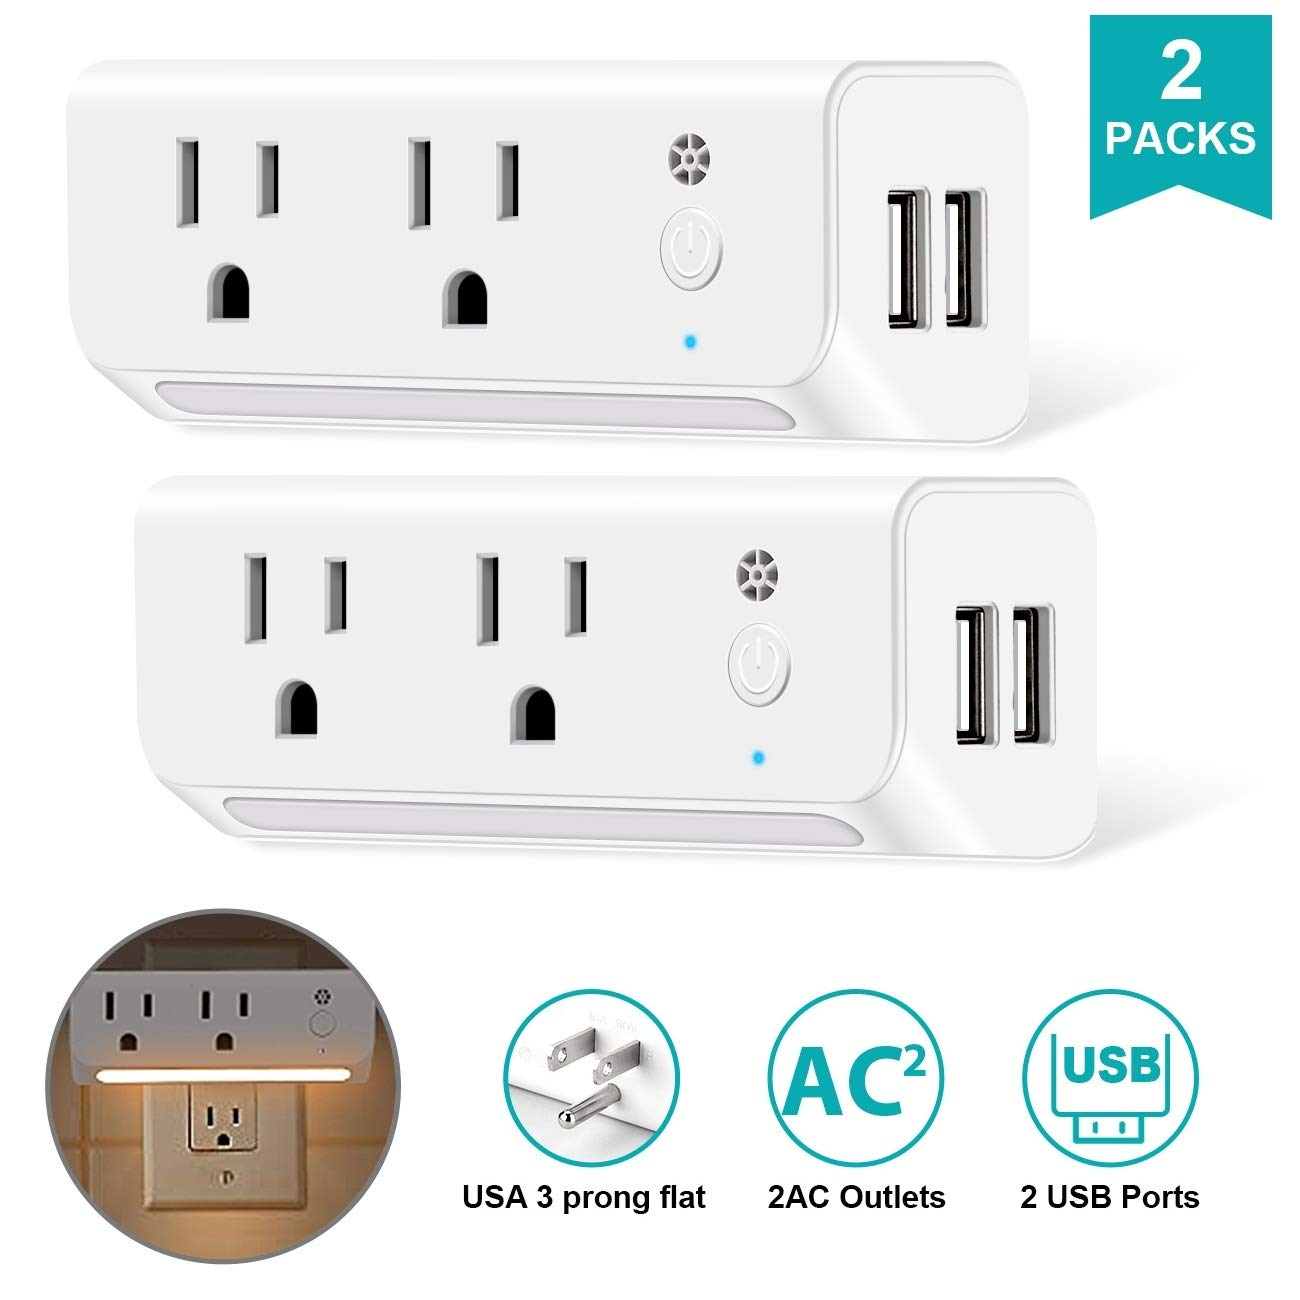 USB Multi Plug Outlet Extender 2 Packs with USB and Dusk-to-Dawn Sensor Night Light, Wall Charger Adapter with 2 AC Outlets 2 USB Ports Power Strip for Cruise Living Room Bedroom Toilet - White